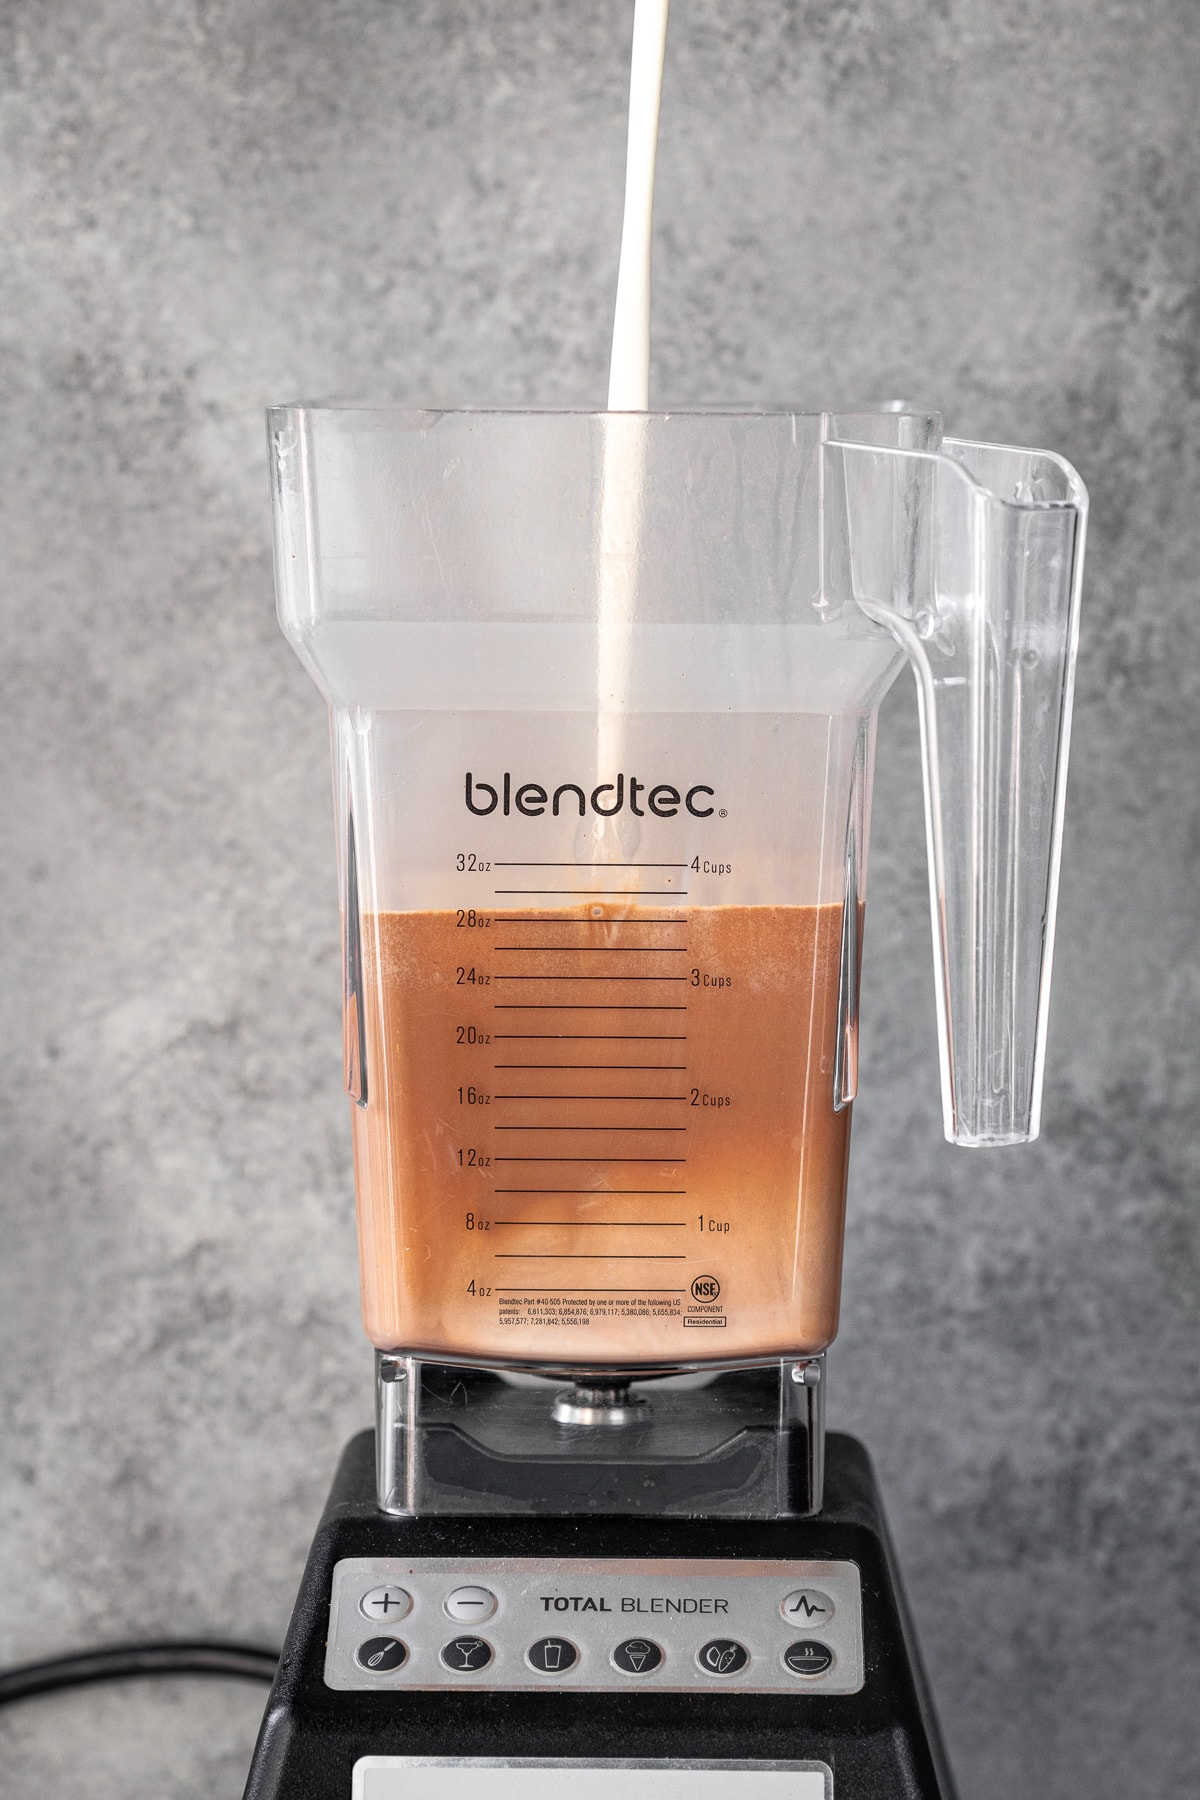 Process shot of cream being poured into a blender.